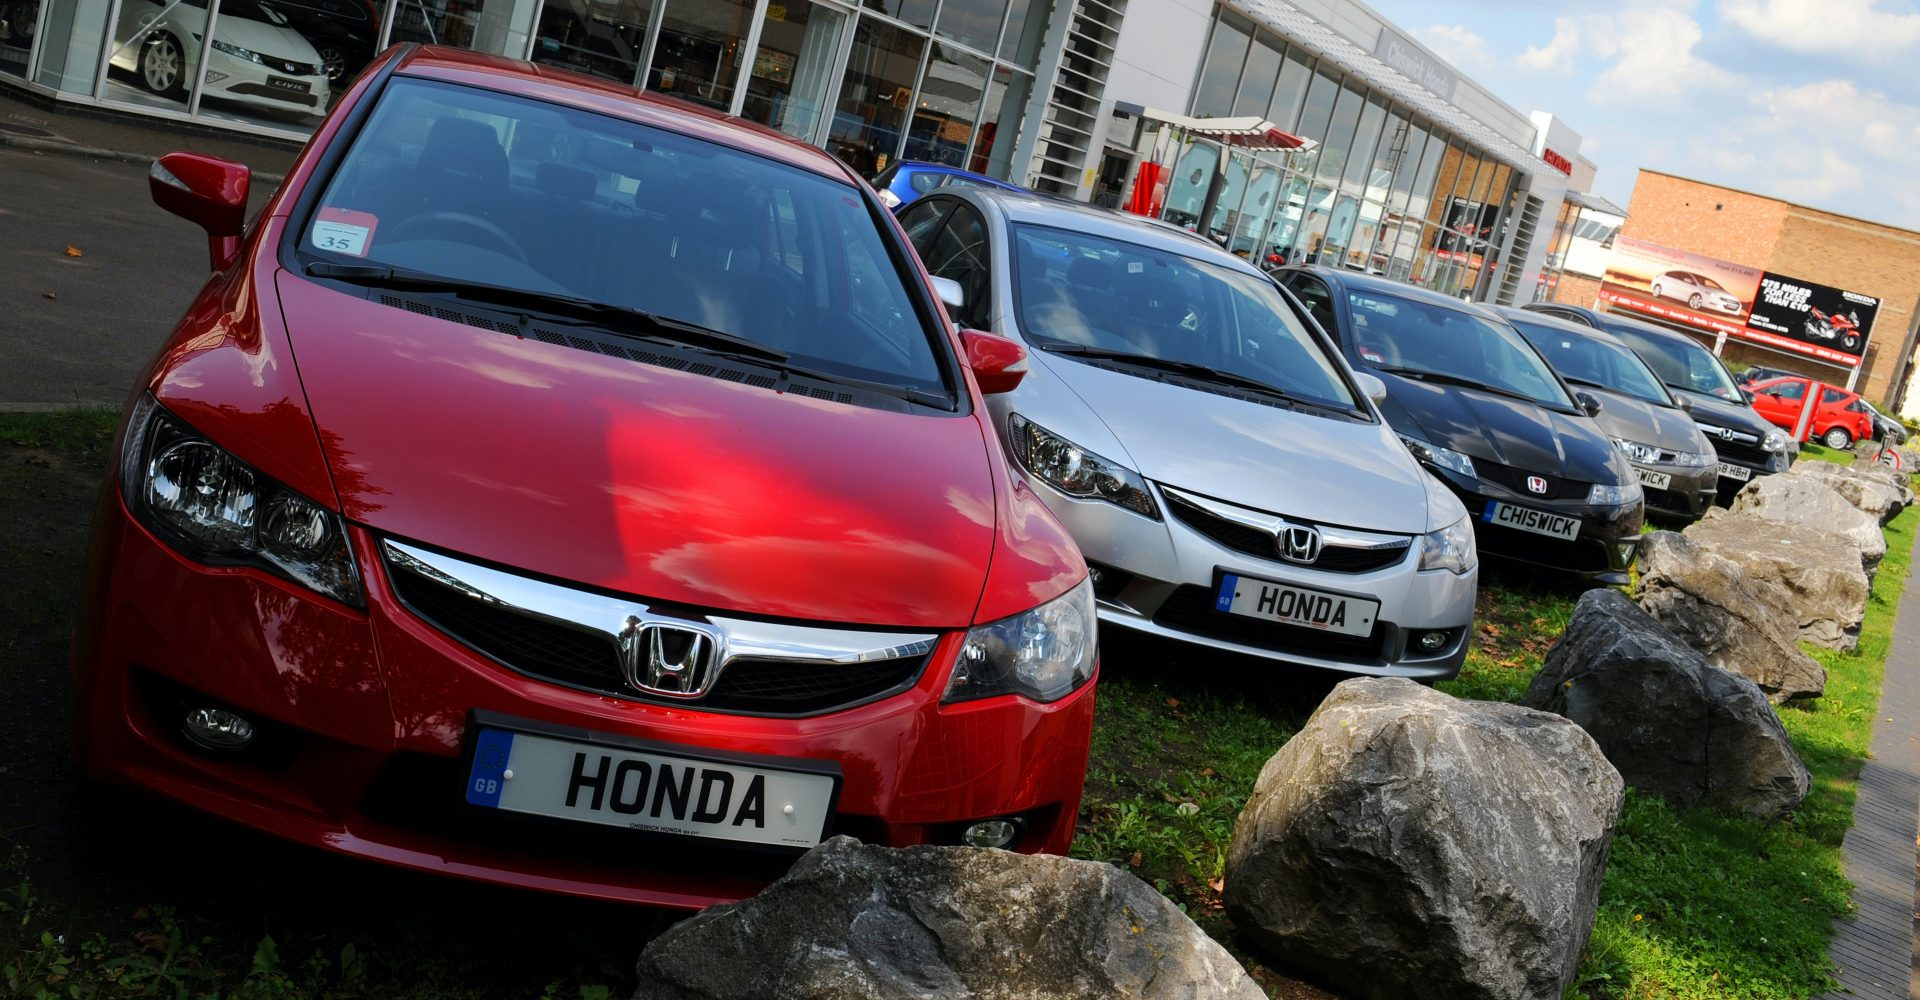 Keeping car showrooms closed 'costs £61m every day'